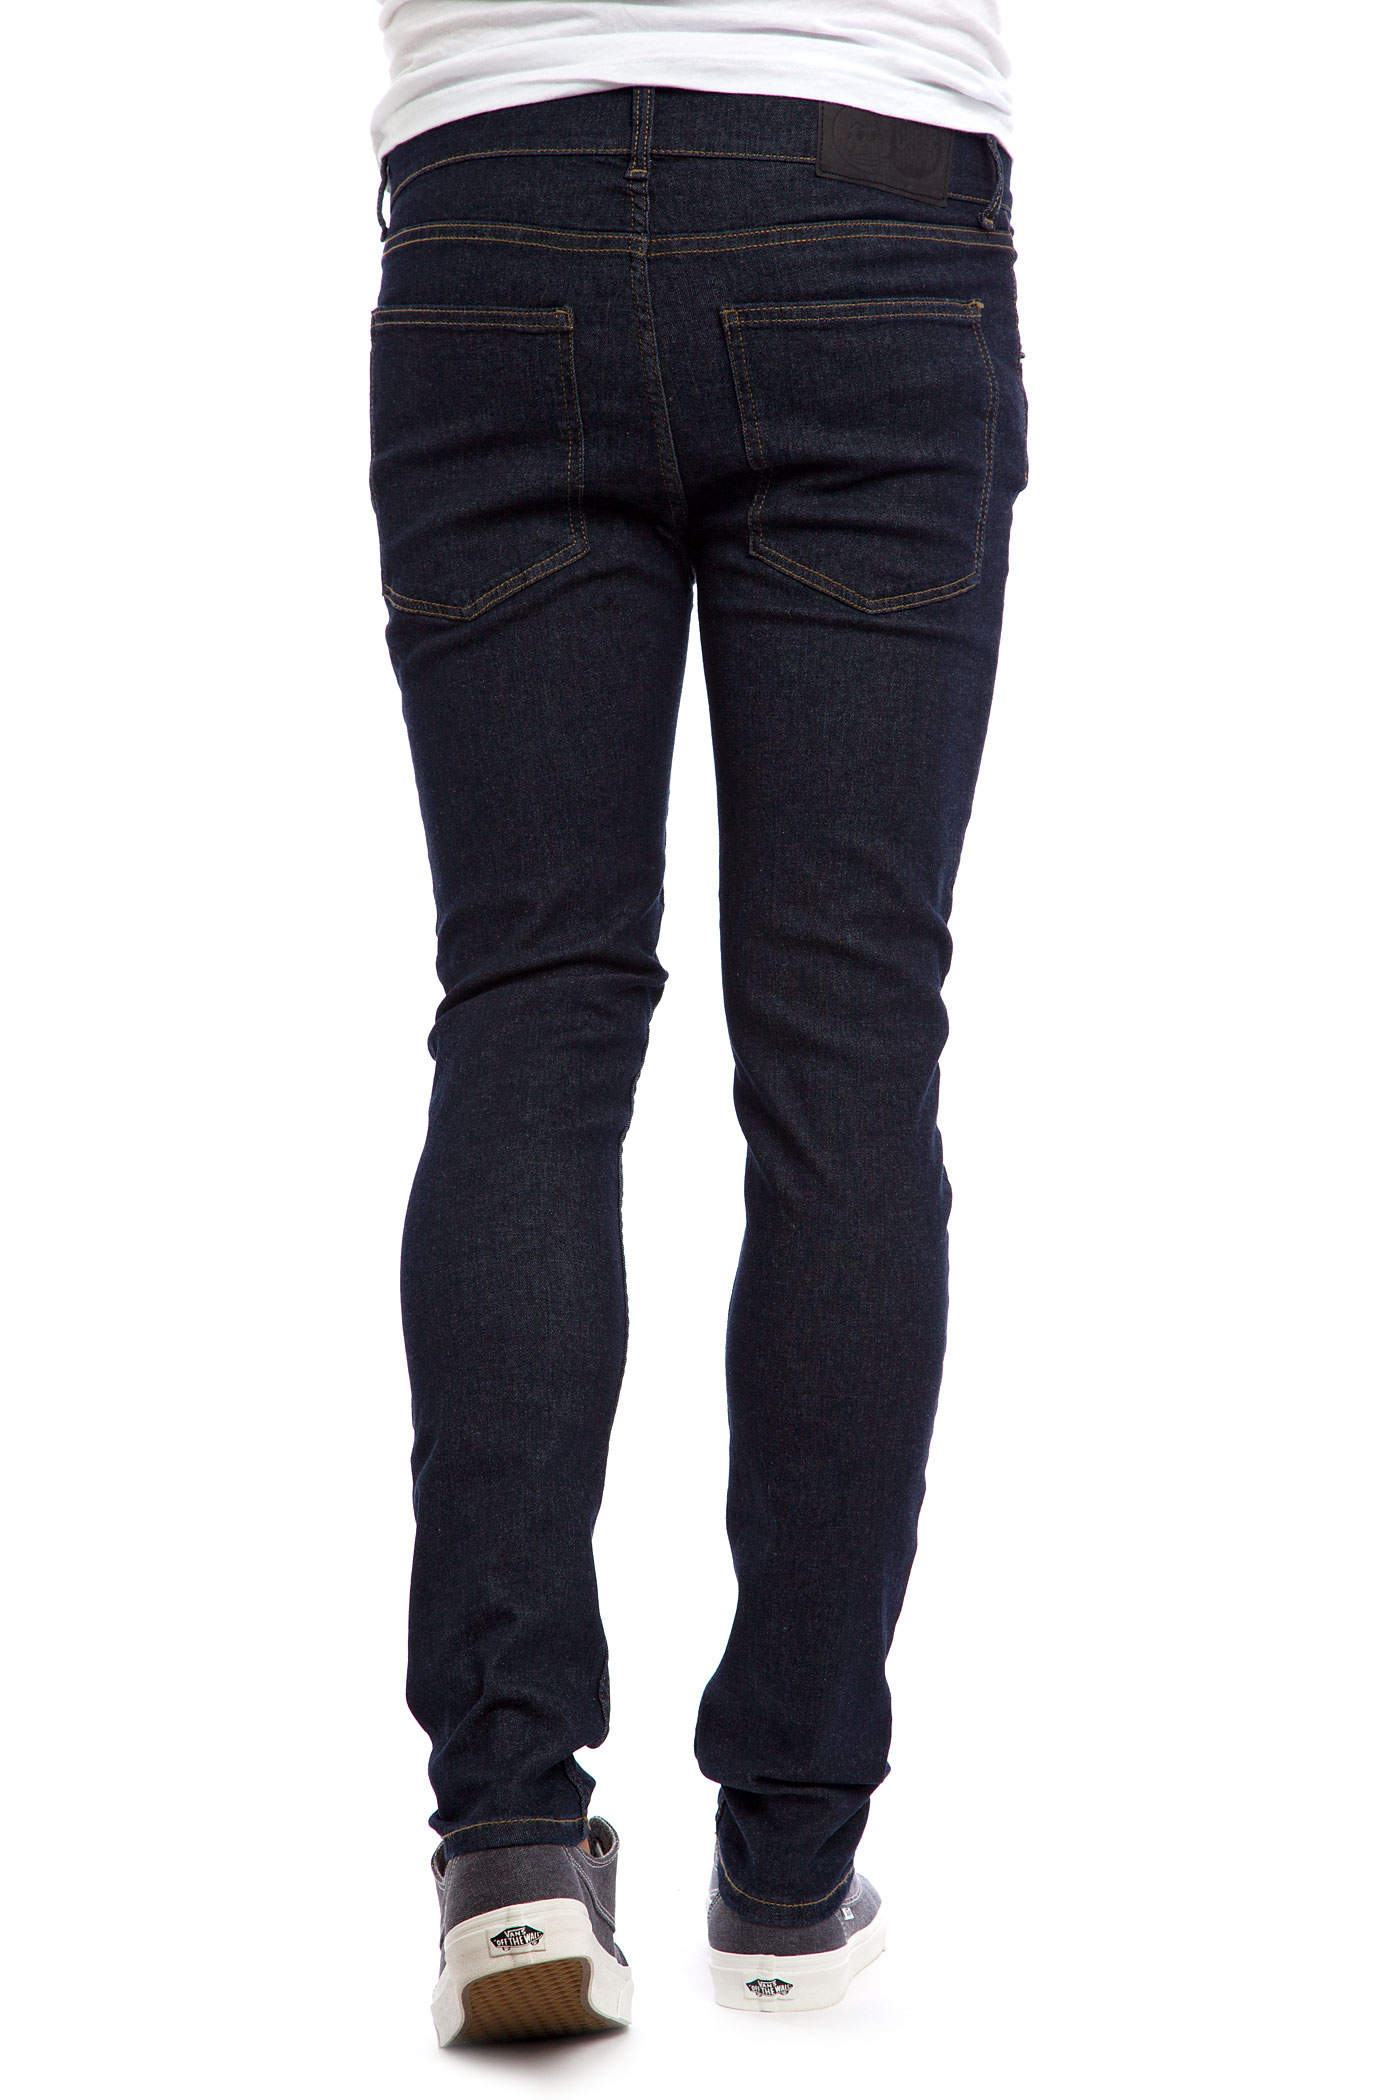 cheap monday tight jeans real blue buy at skatedeluxe. Black Bedroom Furniture Sets. Home Design Ideas